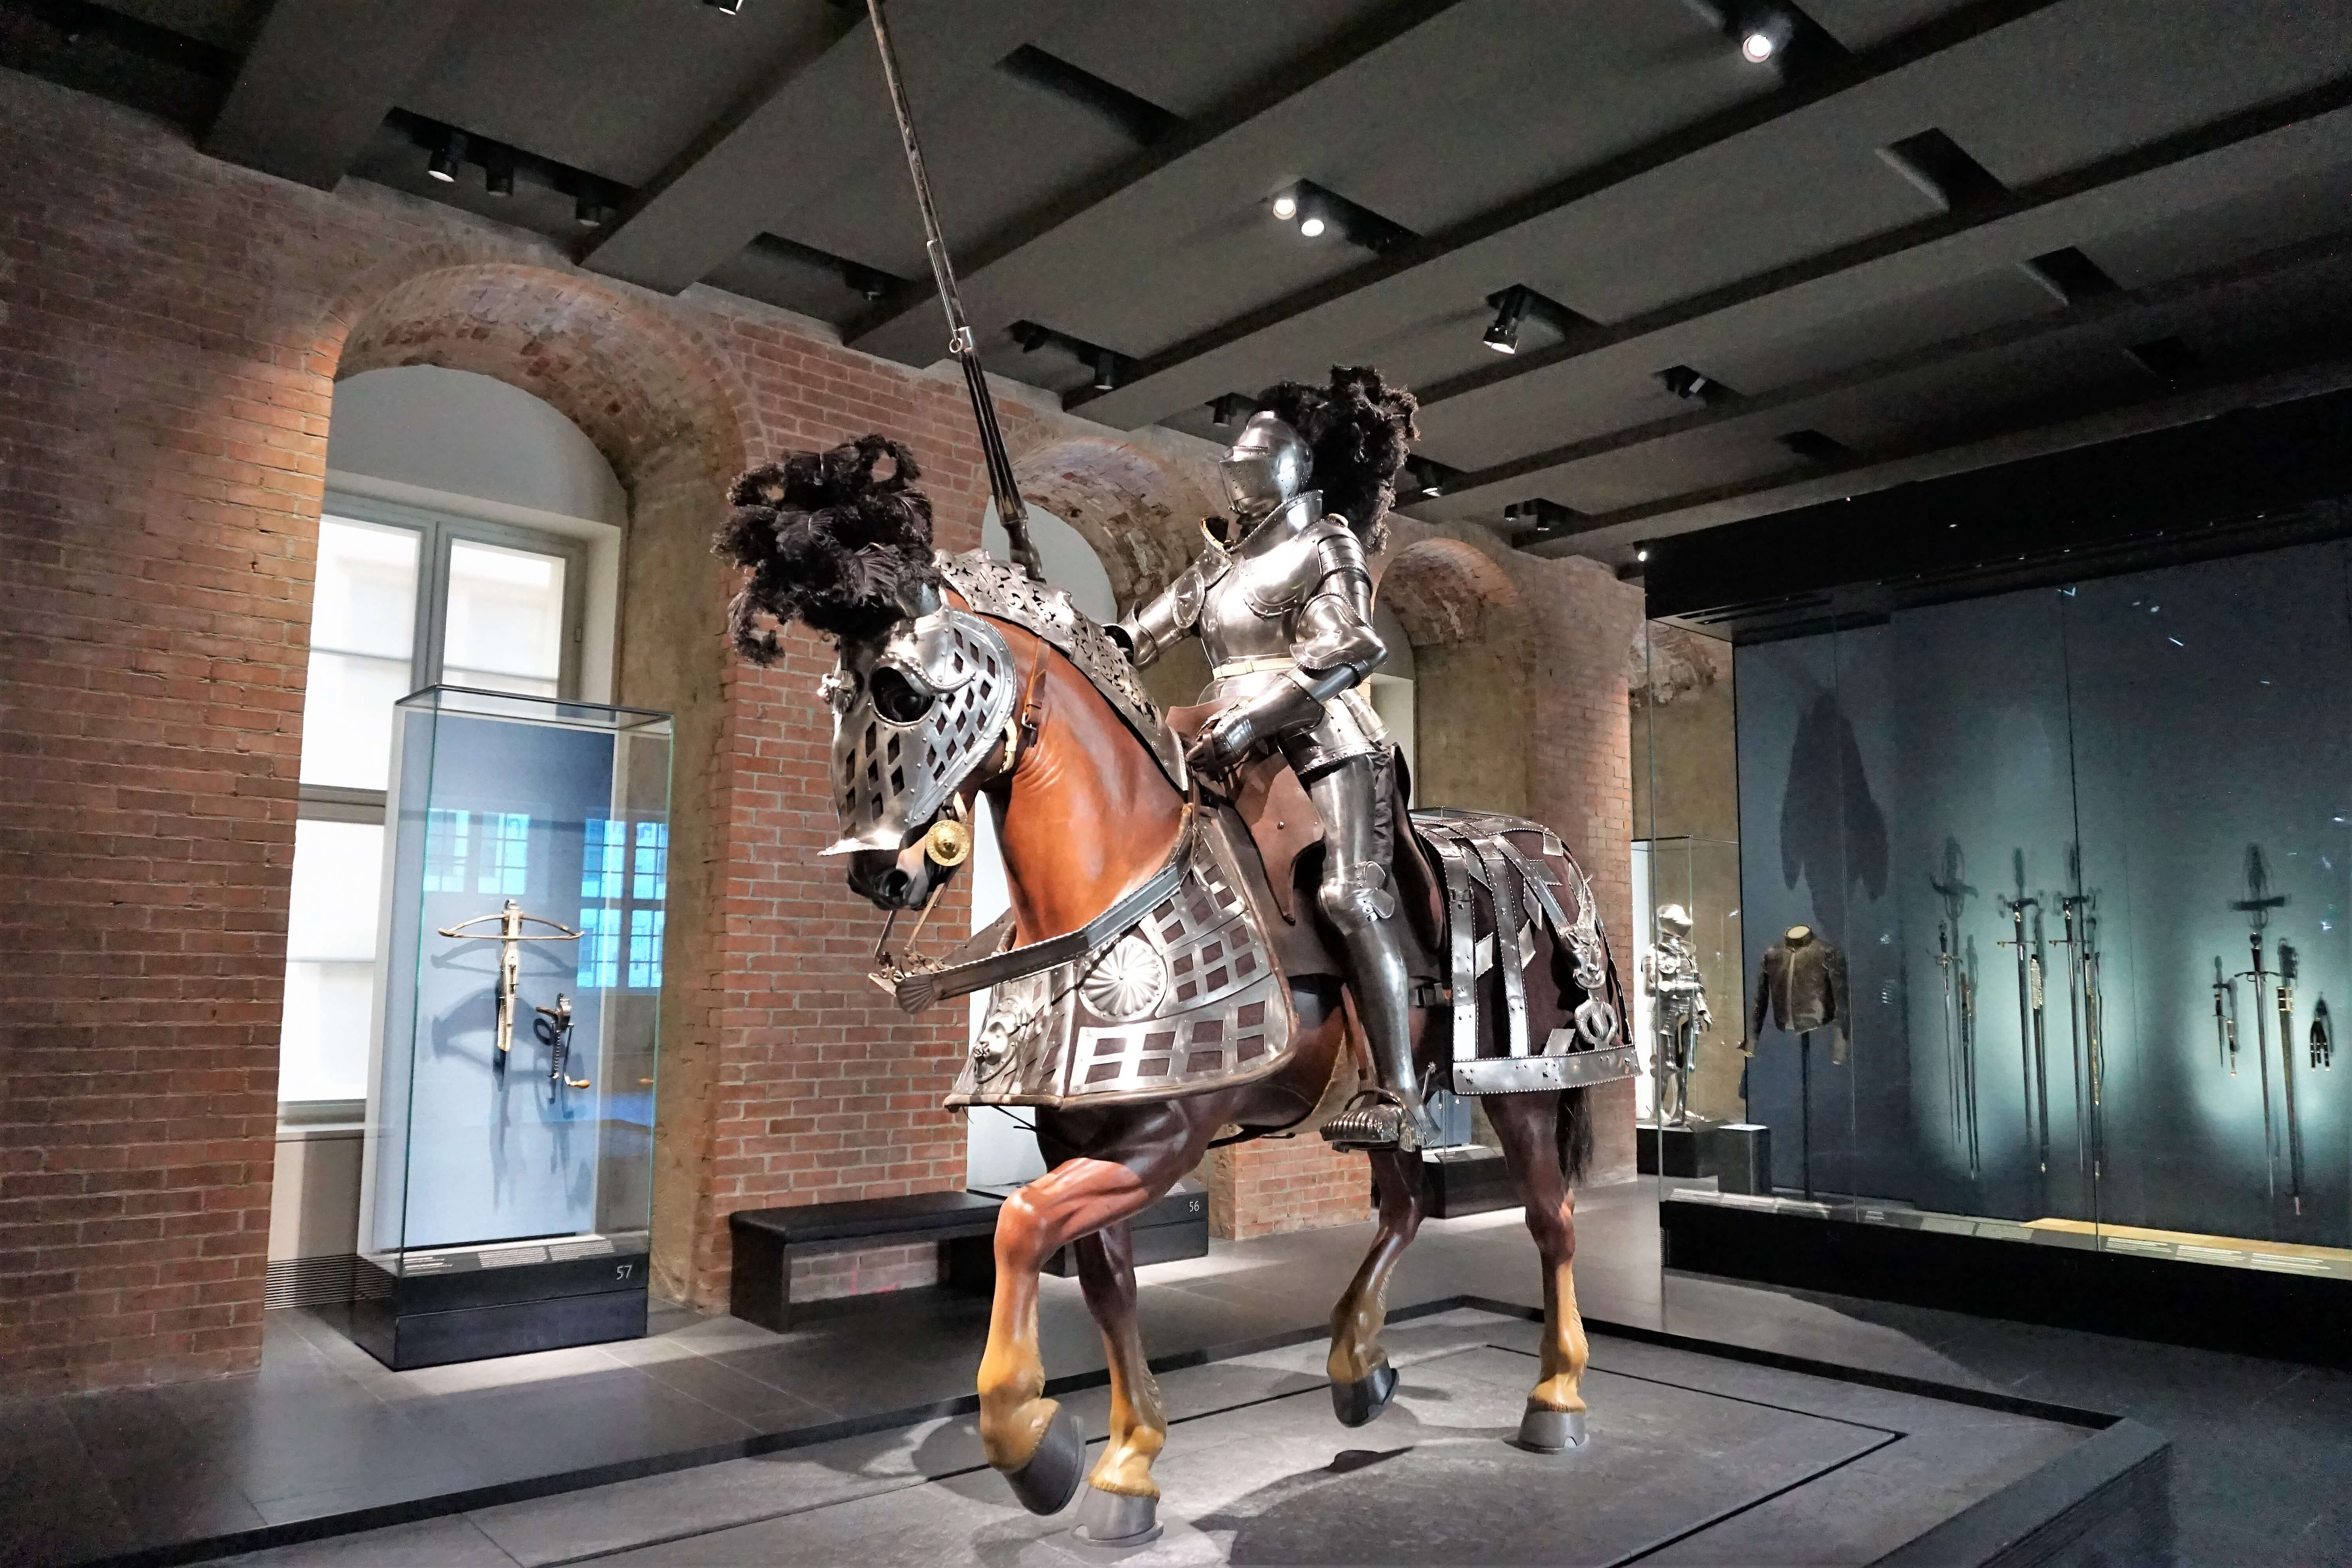 Suit of armor for a horse and man displayed at the Royal Palace in Dresden